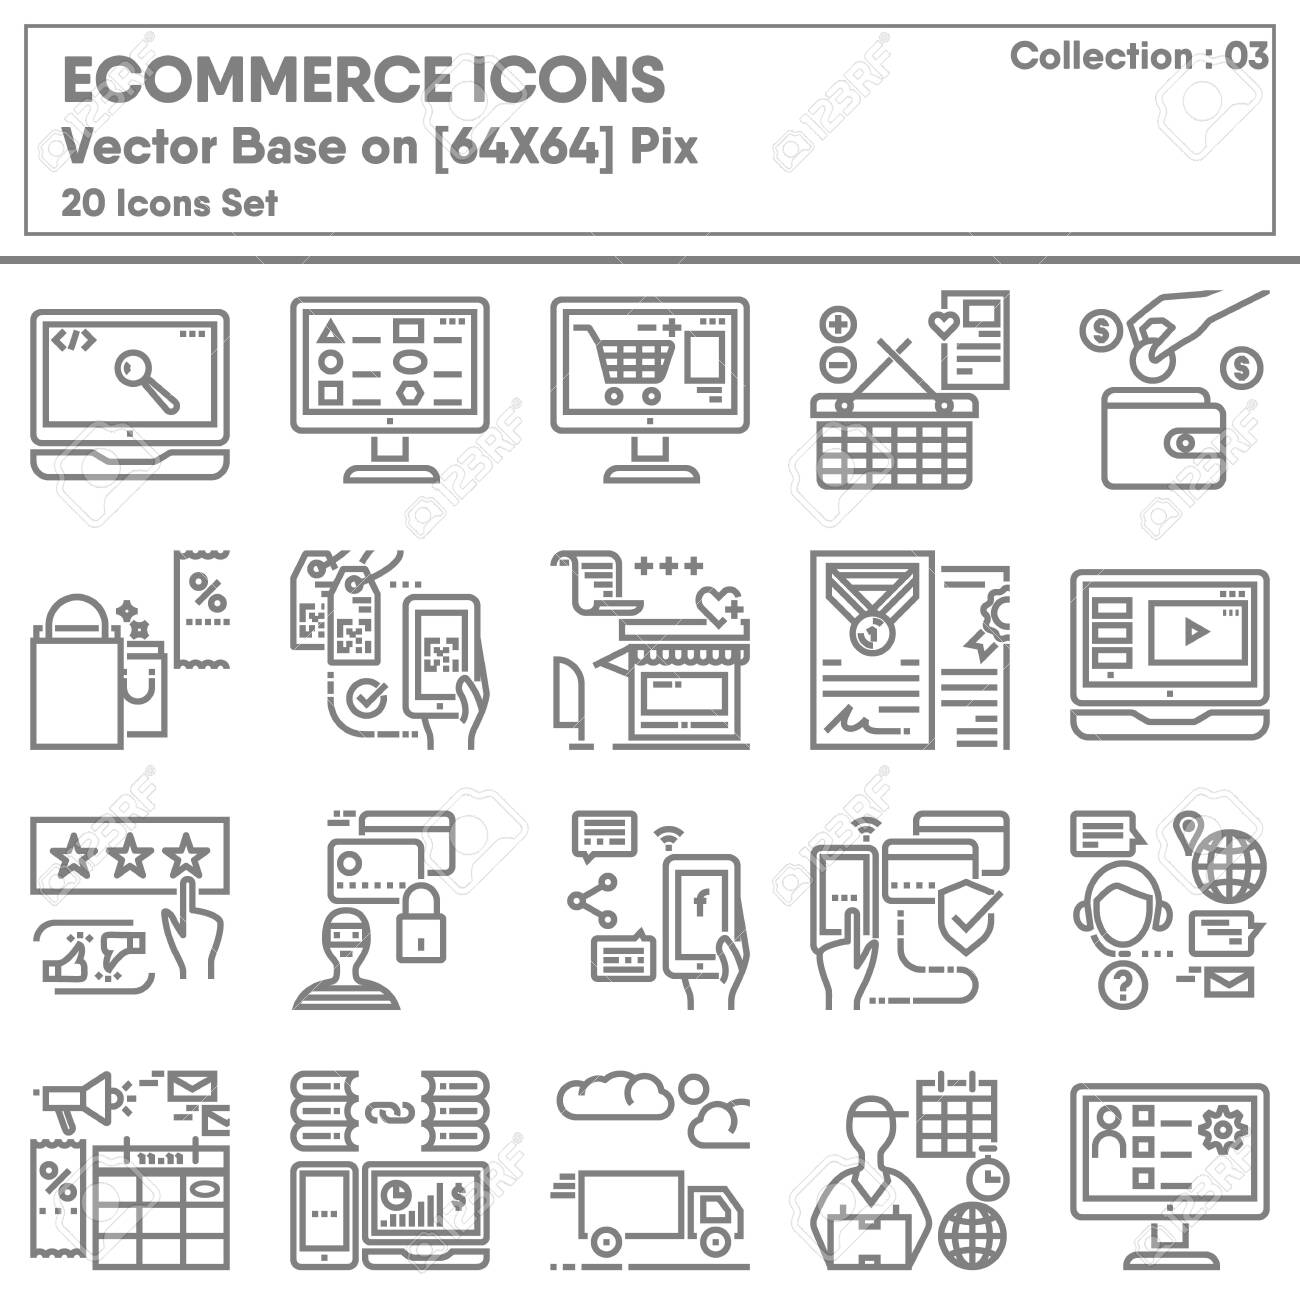 E-commerce Shopping Online and Marketing Network Icons Set, Icon Collection for Business Market Website Advertising. Store Internet Online and Mobile Convenience Shop, Infographic Illustration Design. - 138146542